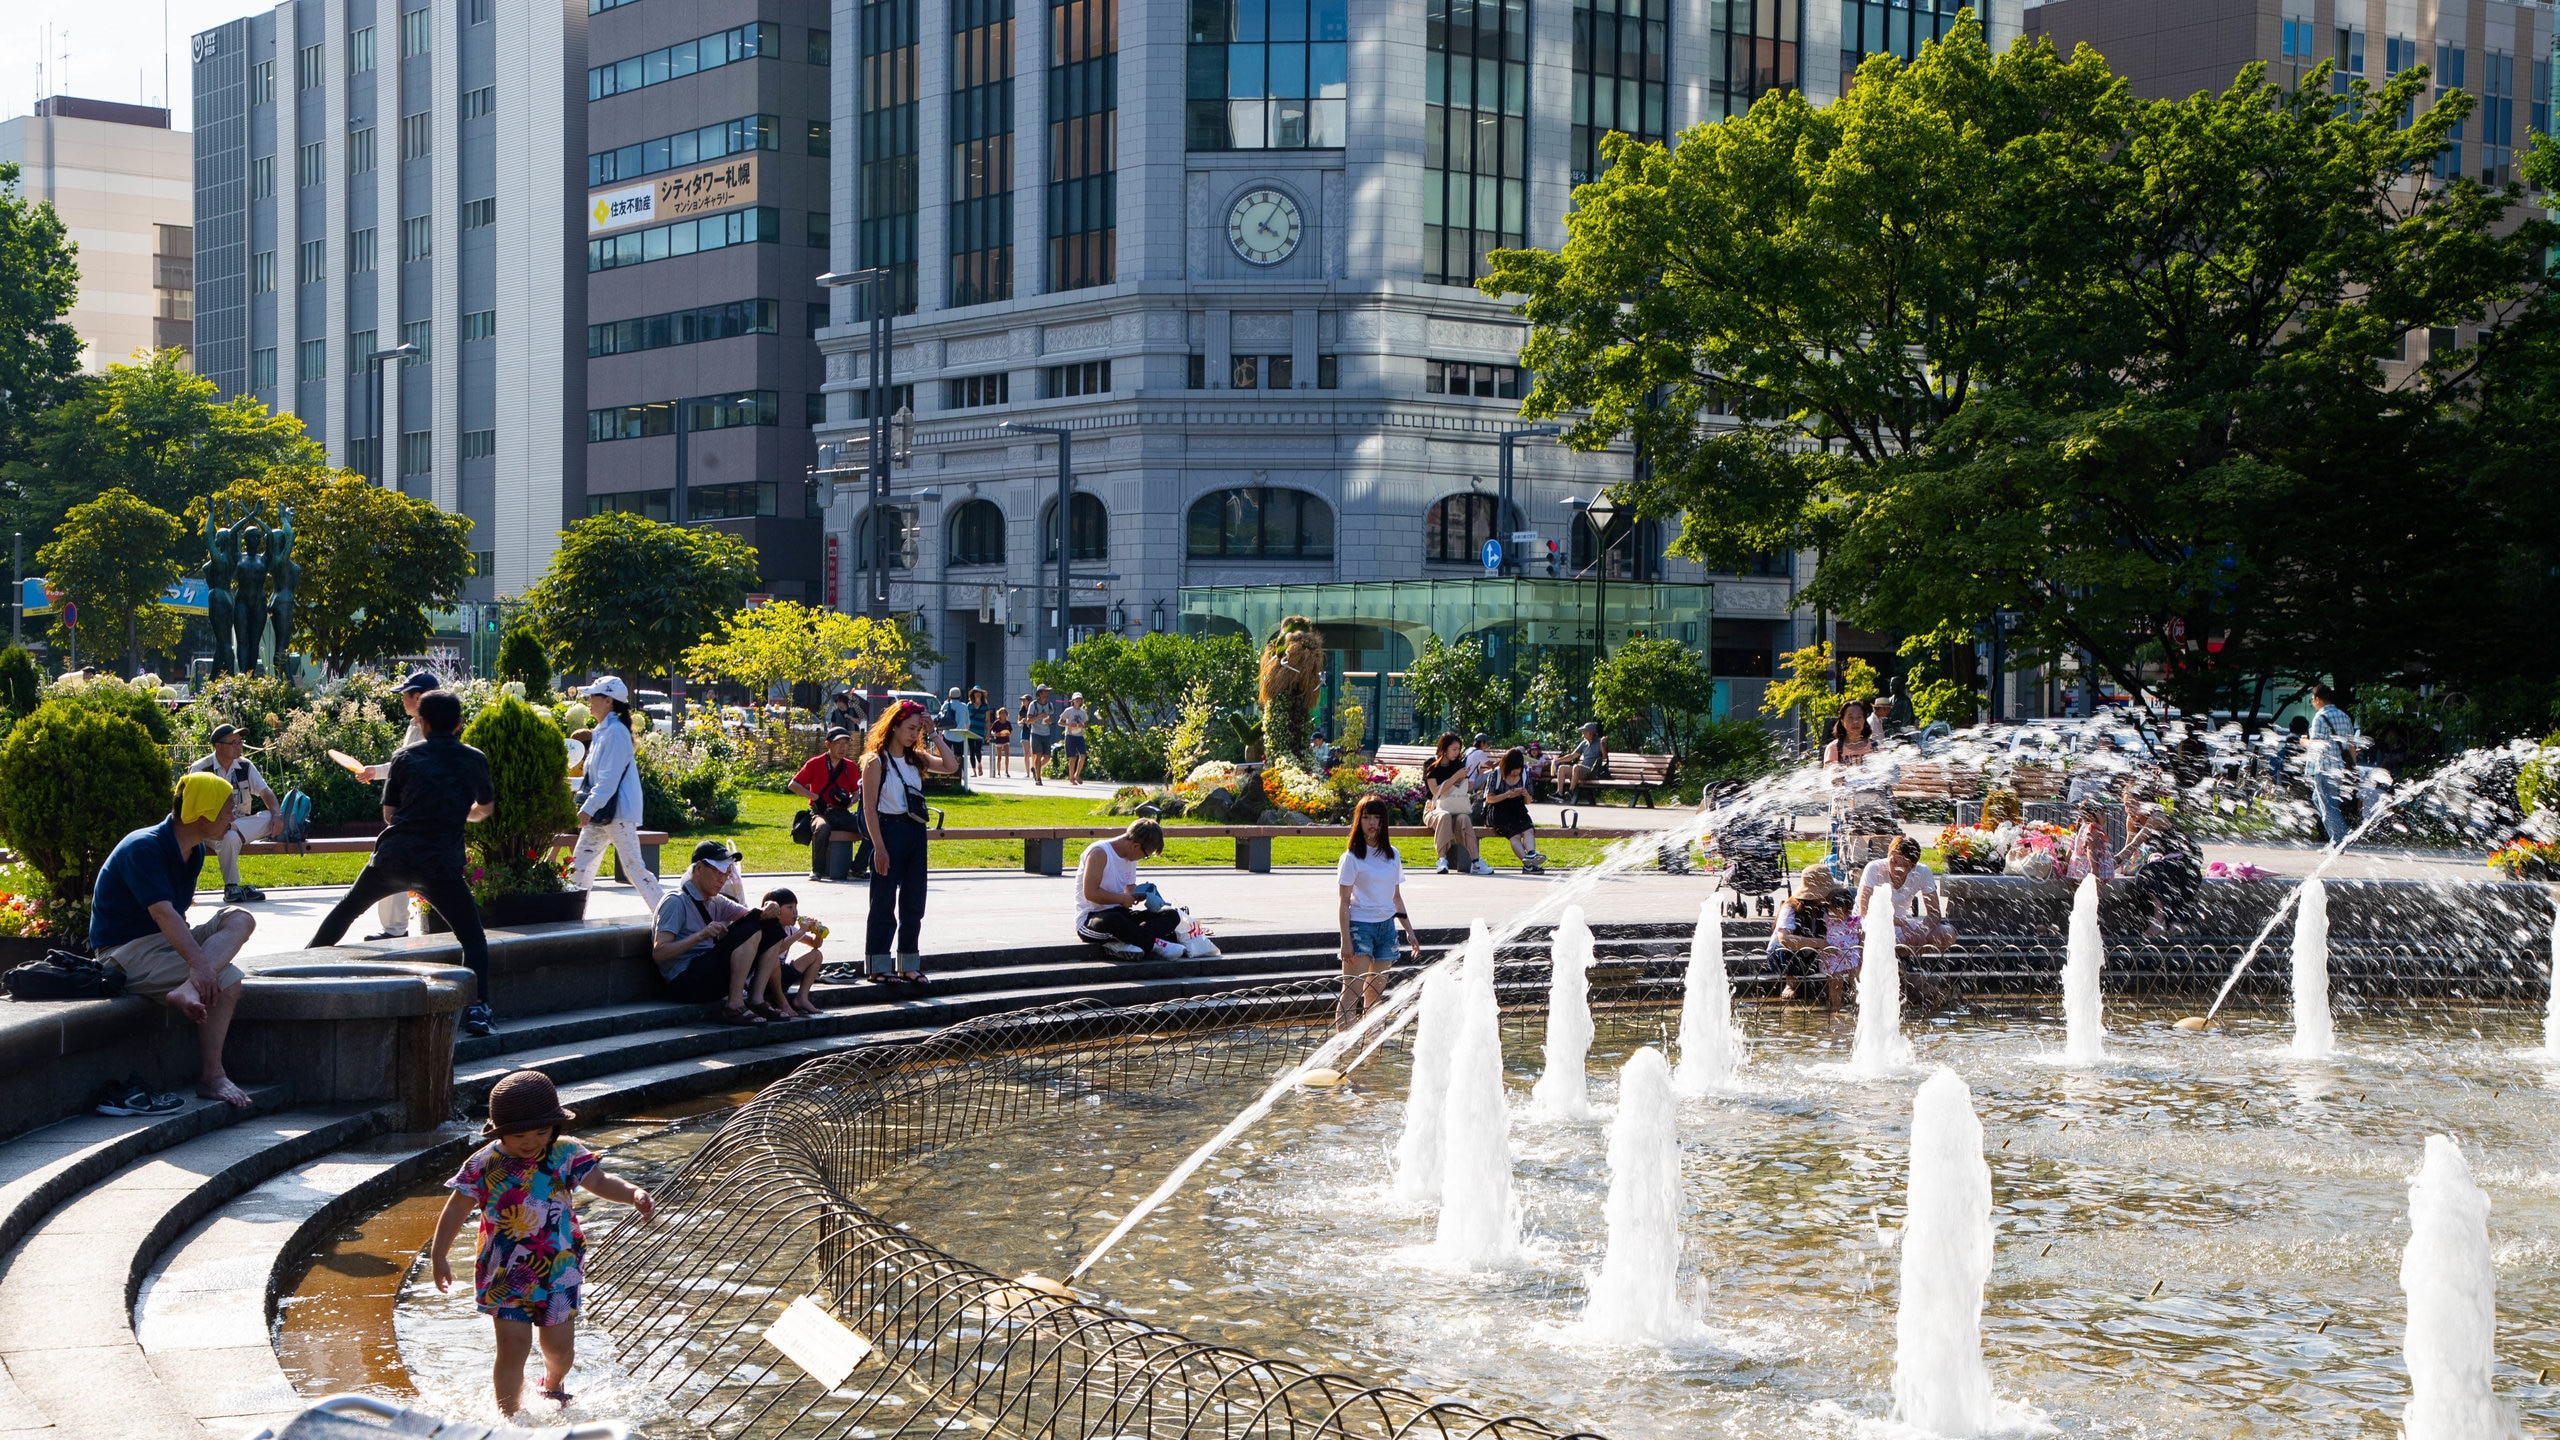 Sapporo's main thoroughfare has been transformed into a long municipal park, also the city's premier venue for festivals throughout the year.